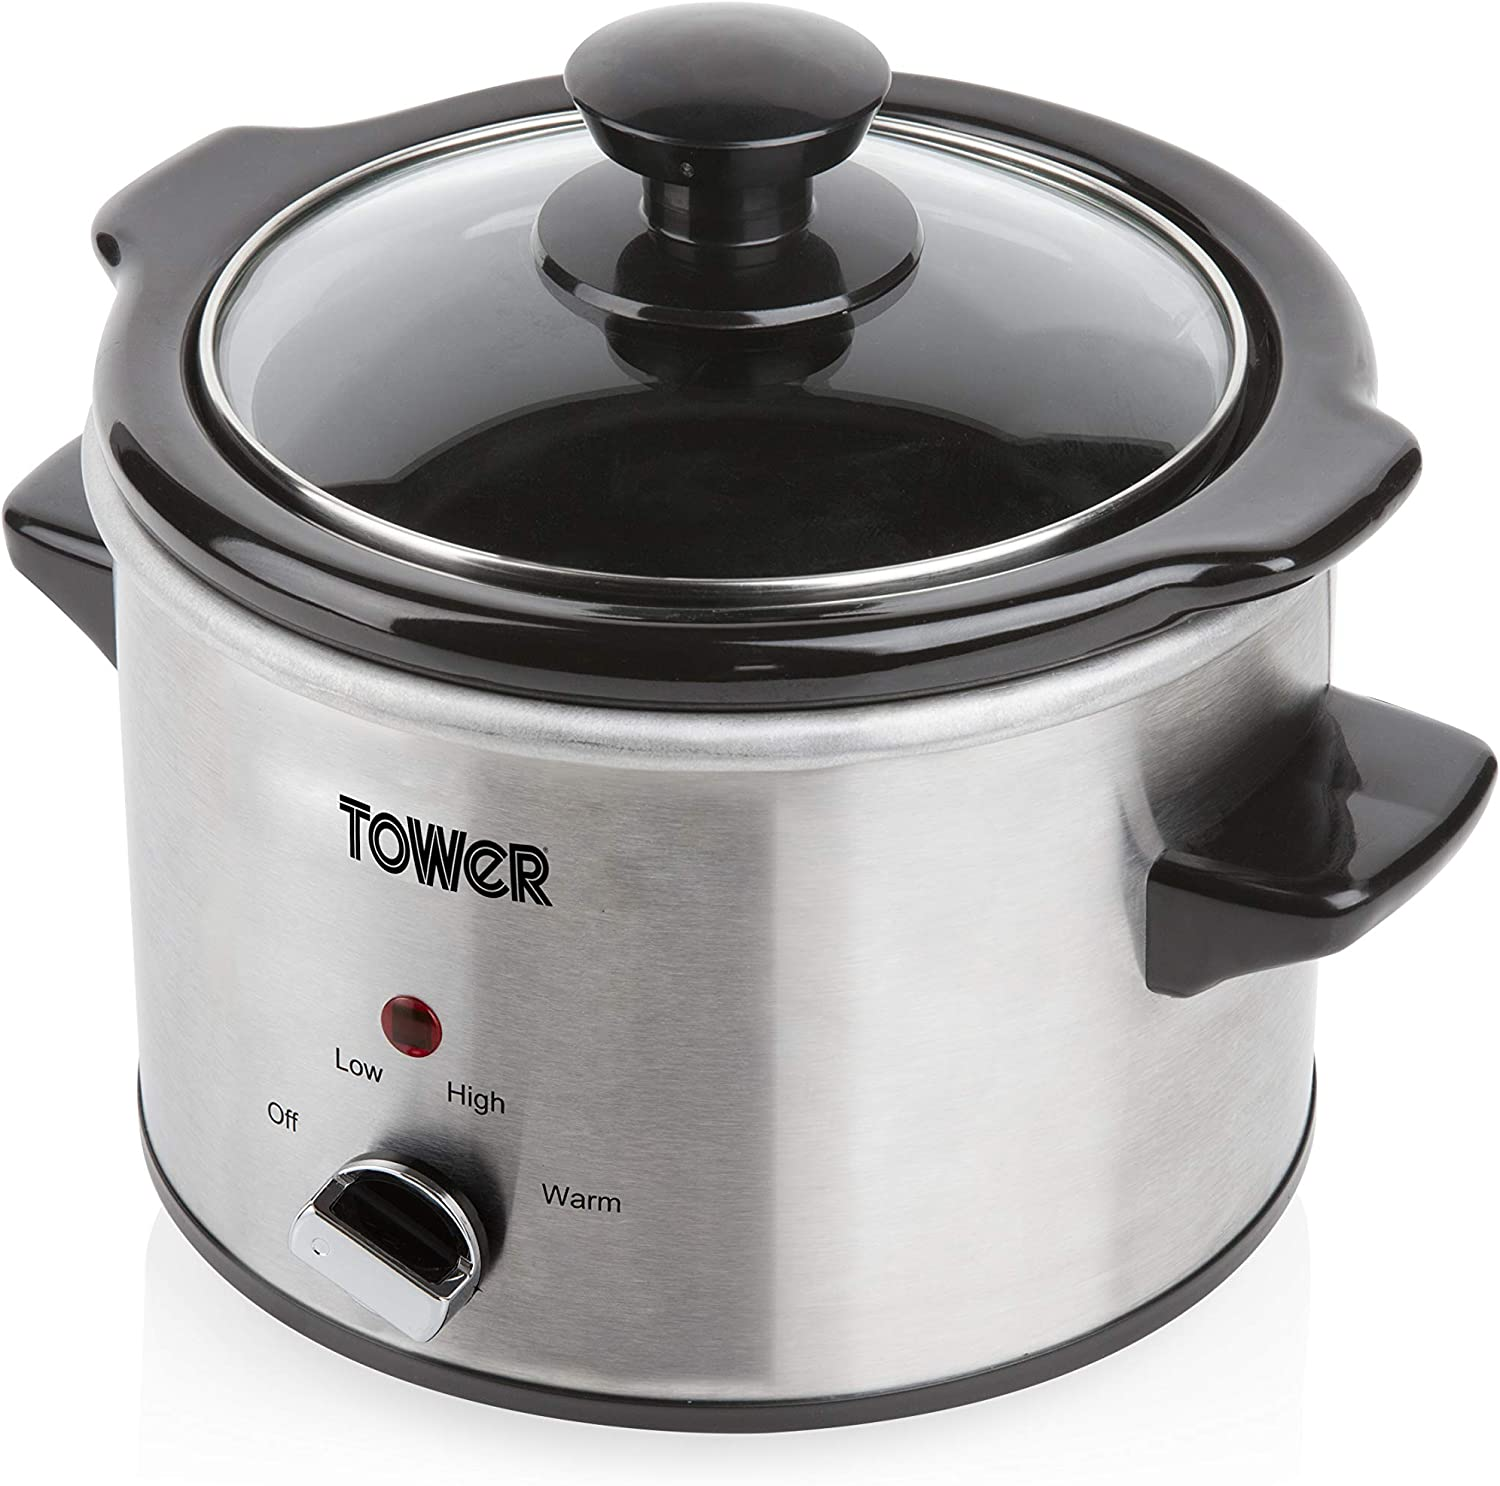 TOWER Stainless Steel Slow Cooker with 3 Heat Settings, Keep Warm Function, Tempered Glass Lid, Removable Ceramic Pot, 1.5 Litre, 120 W, Silver